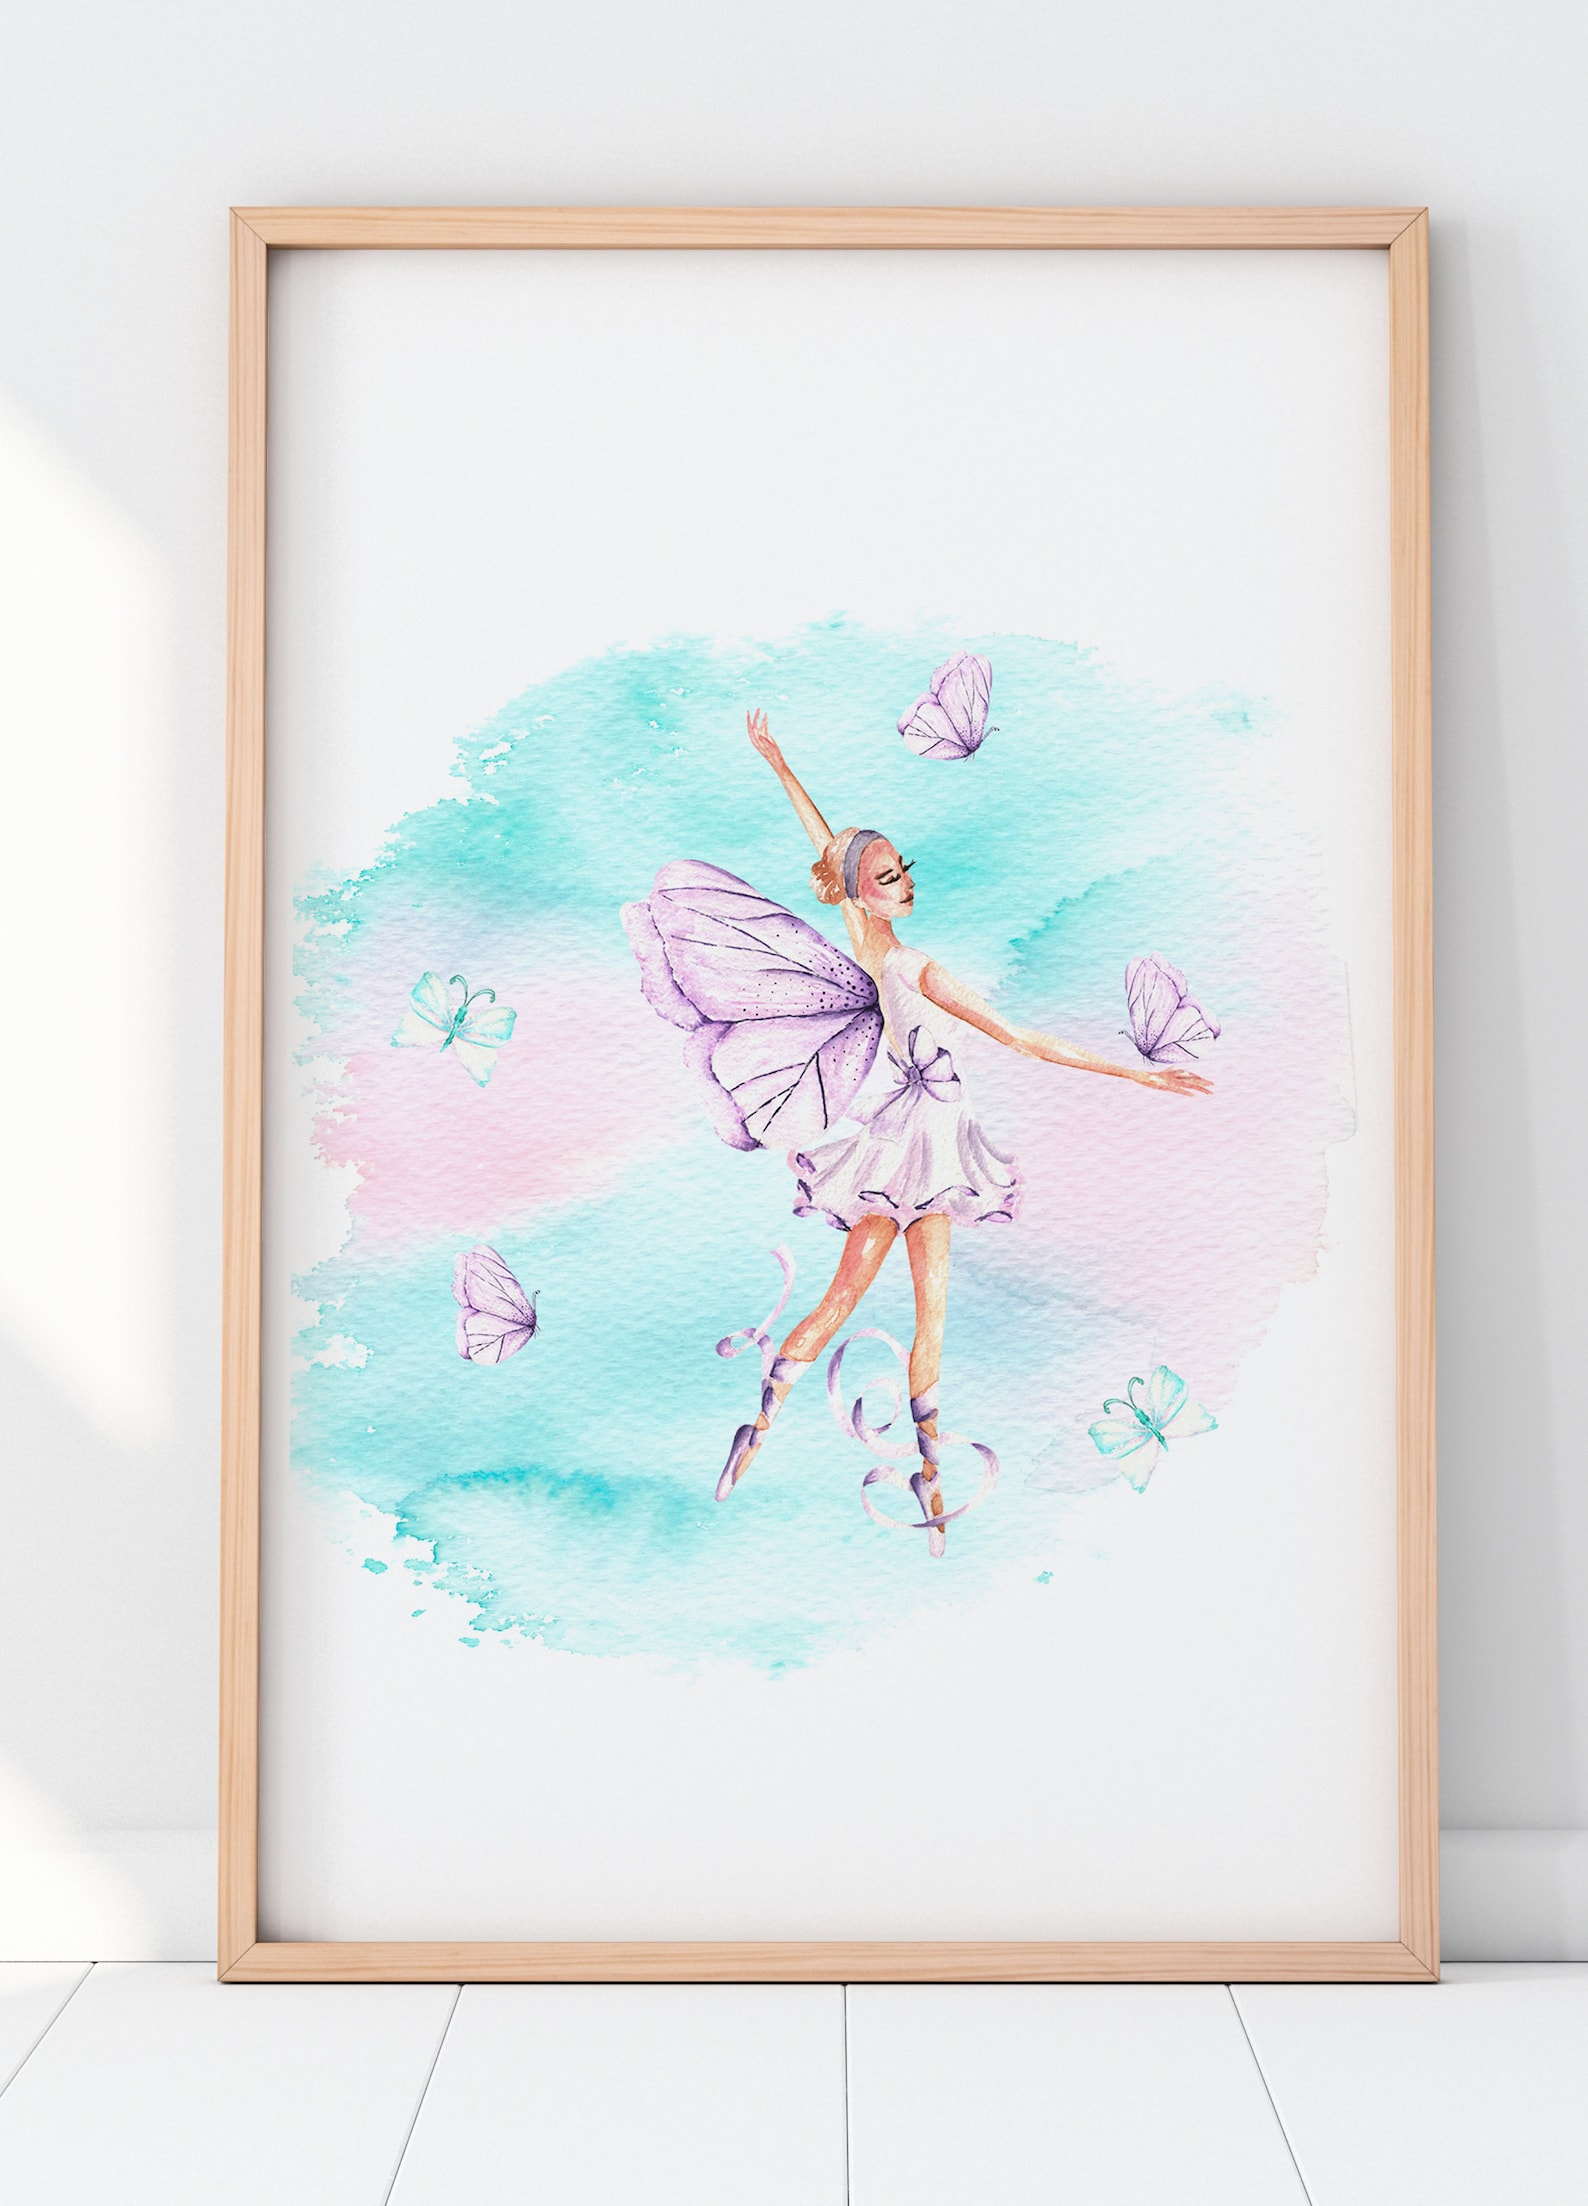 printable ballerina wall art for ballerina nursery | ballet wall art girls ballerina decor | ballet print cute ballet art | ball